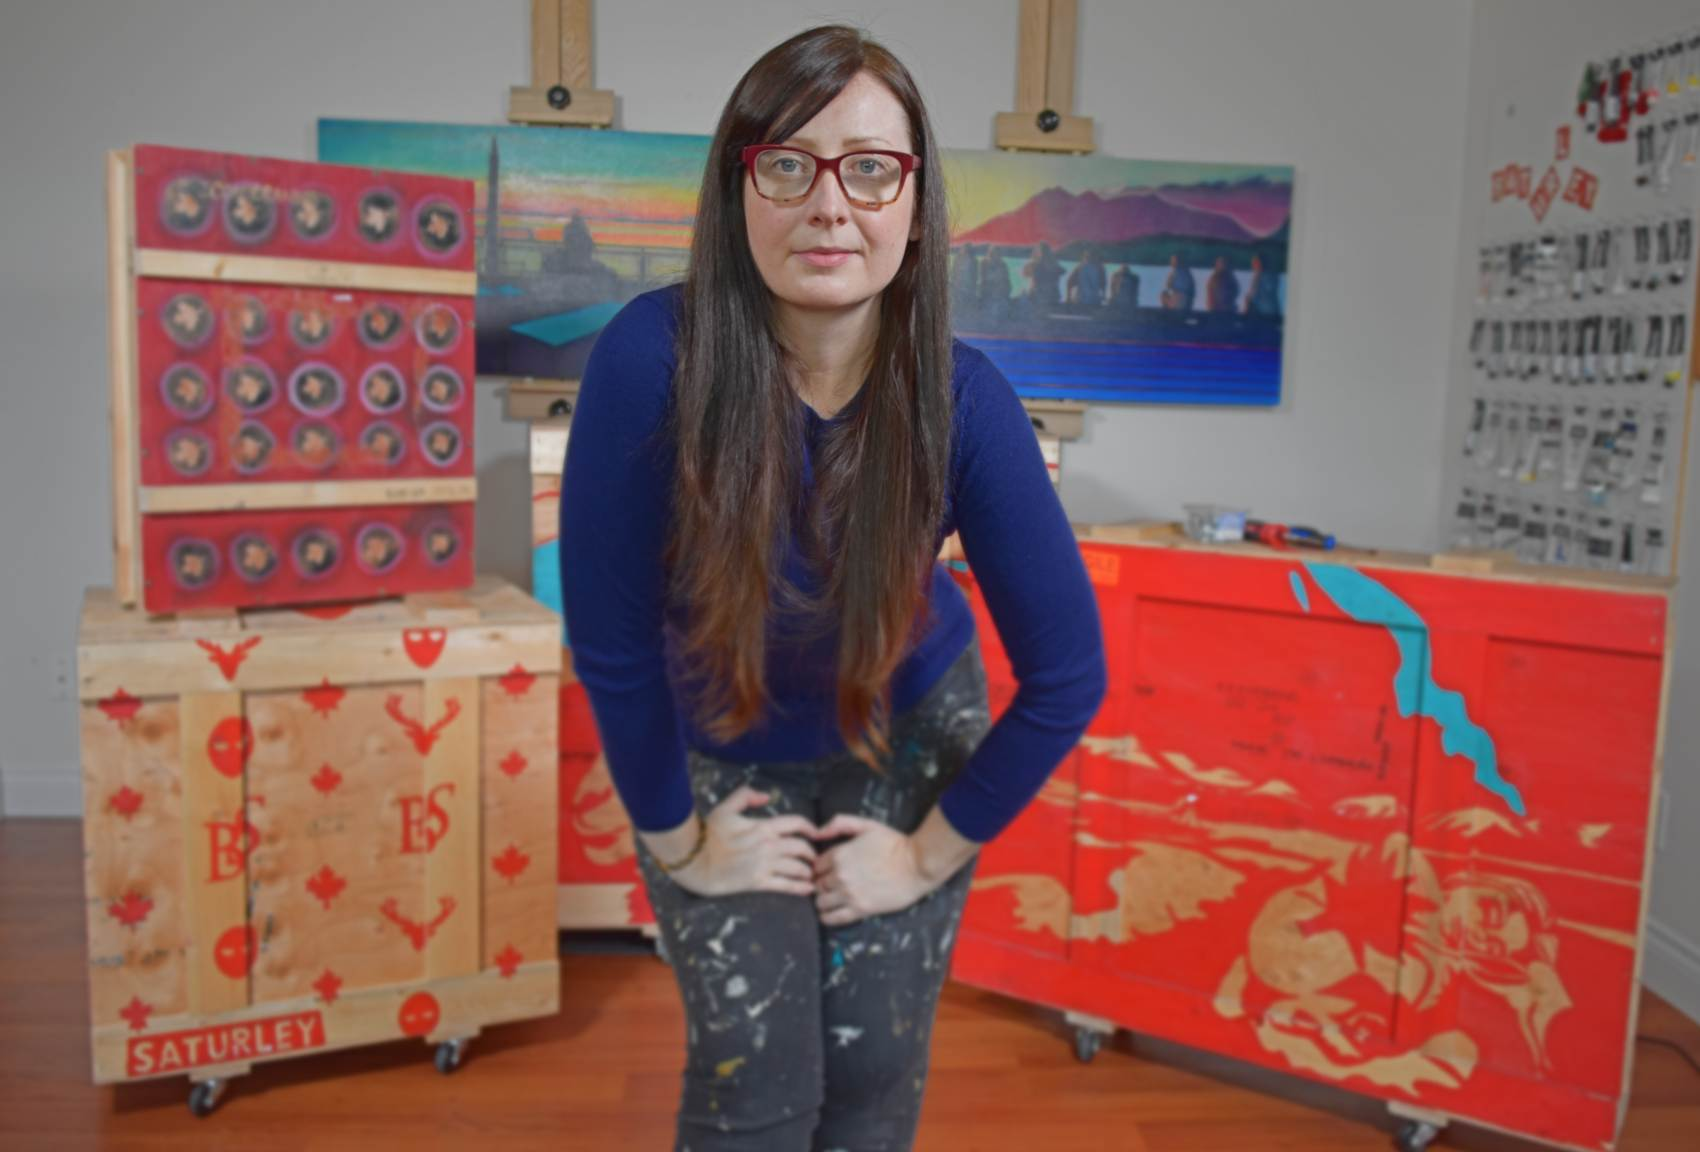 Canadian artists and painter Brandy Saturley